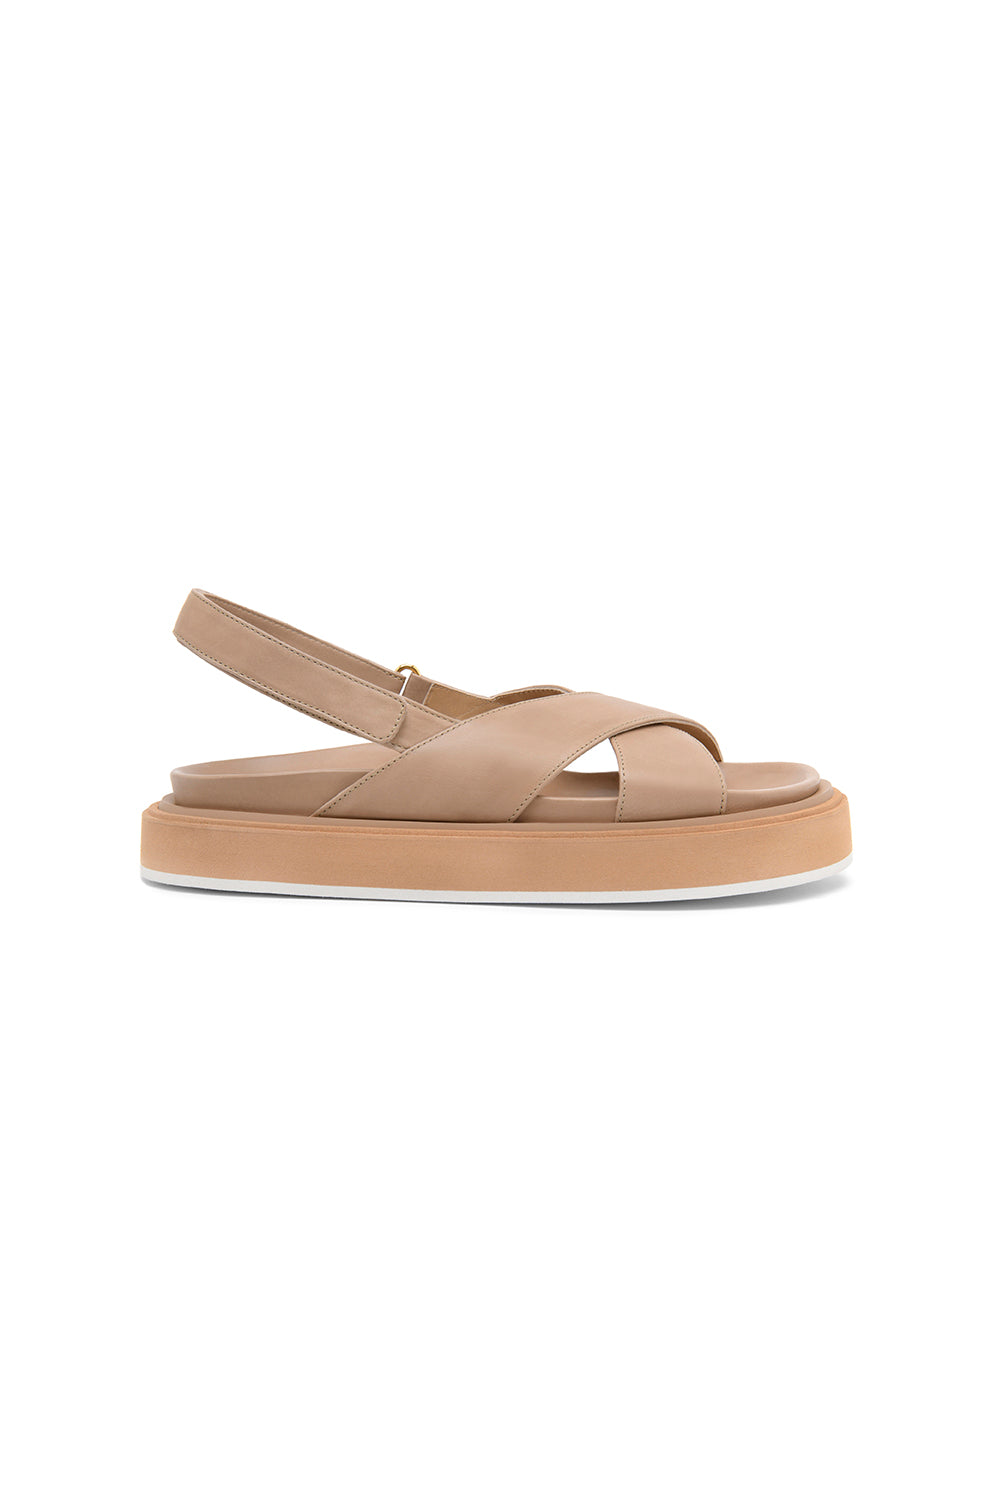 RITA leather platform criss-cross sandal - HAZY